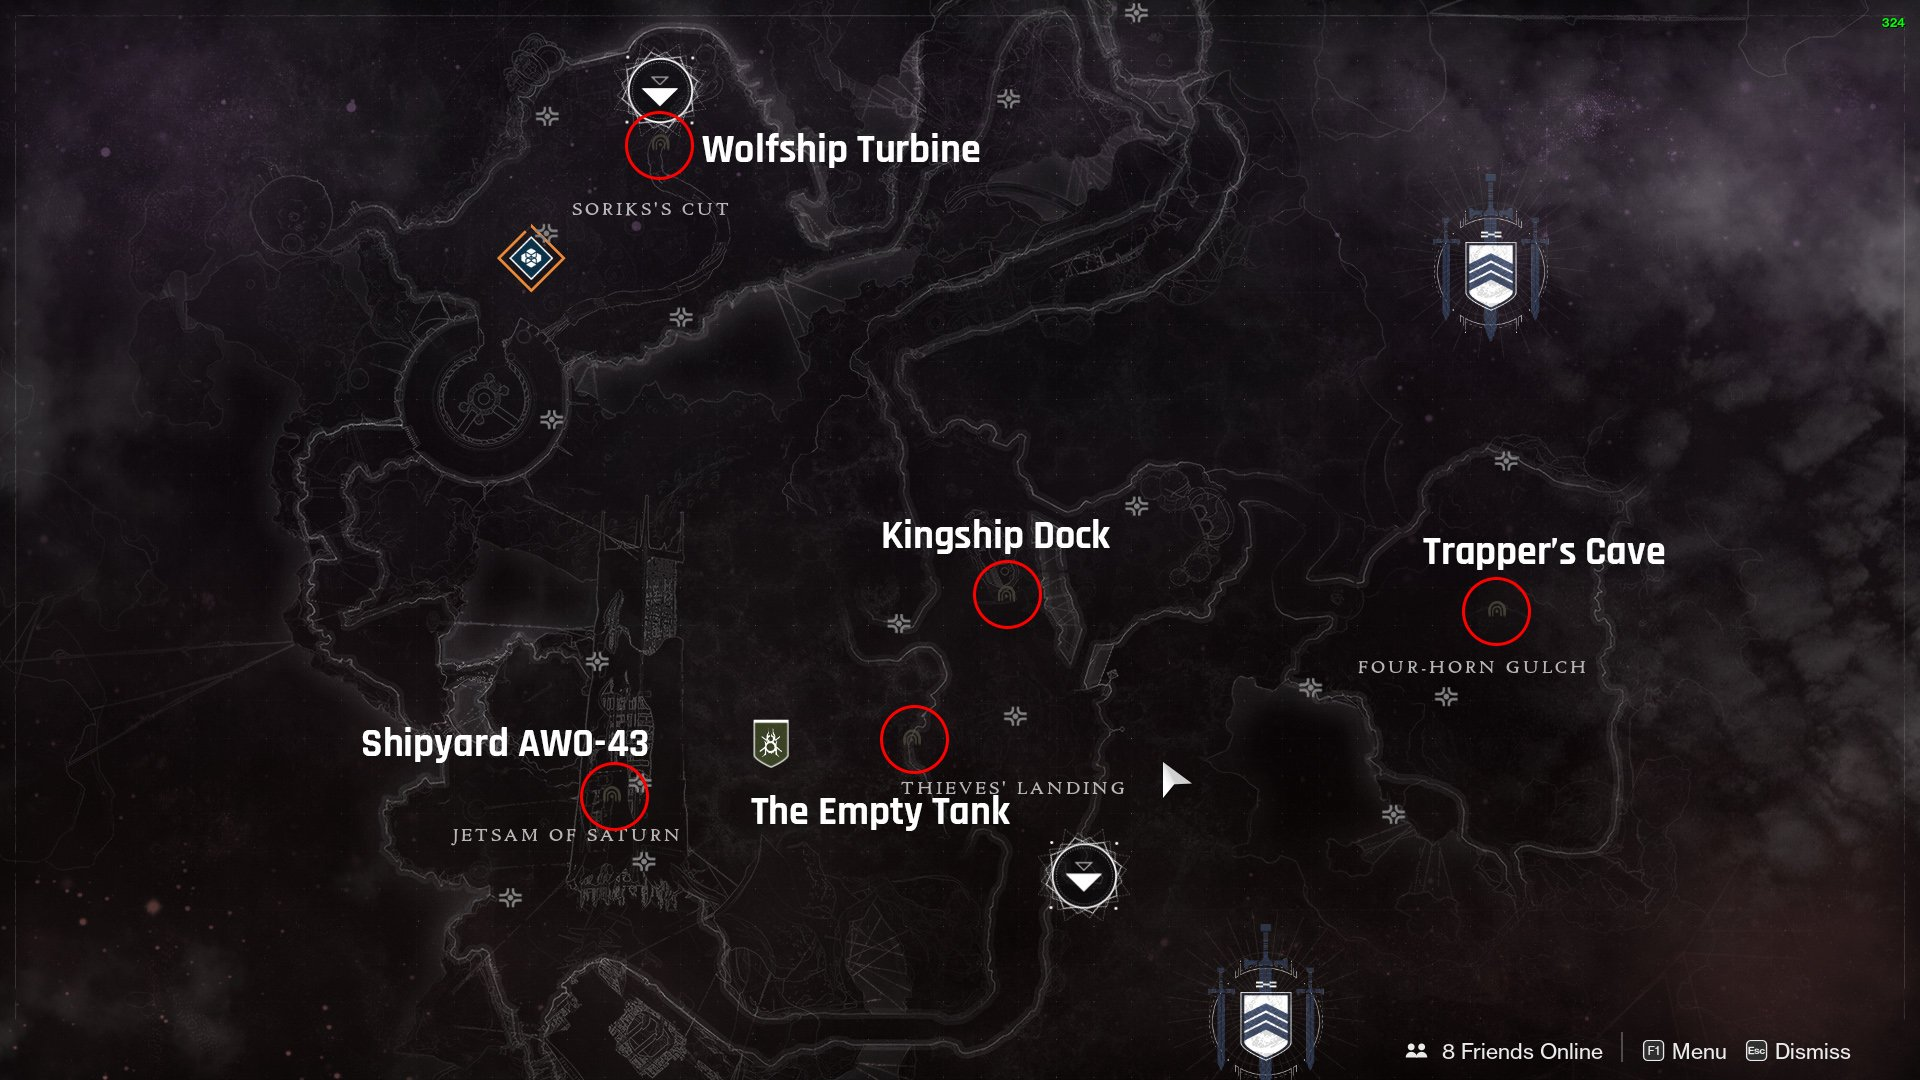 Destiny 2 Lost Sectors Tangled Shore